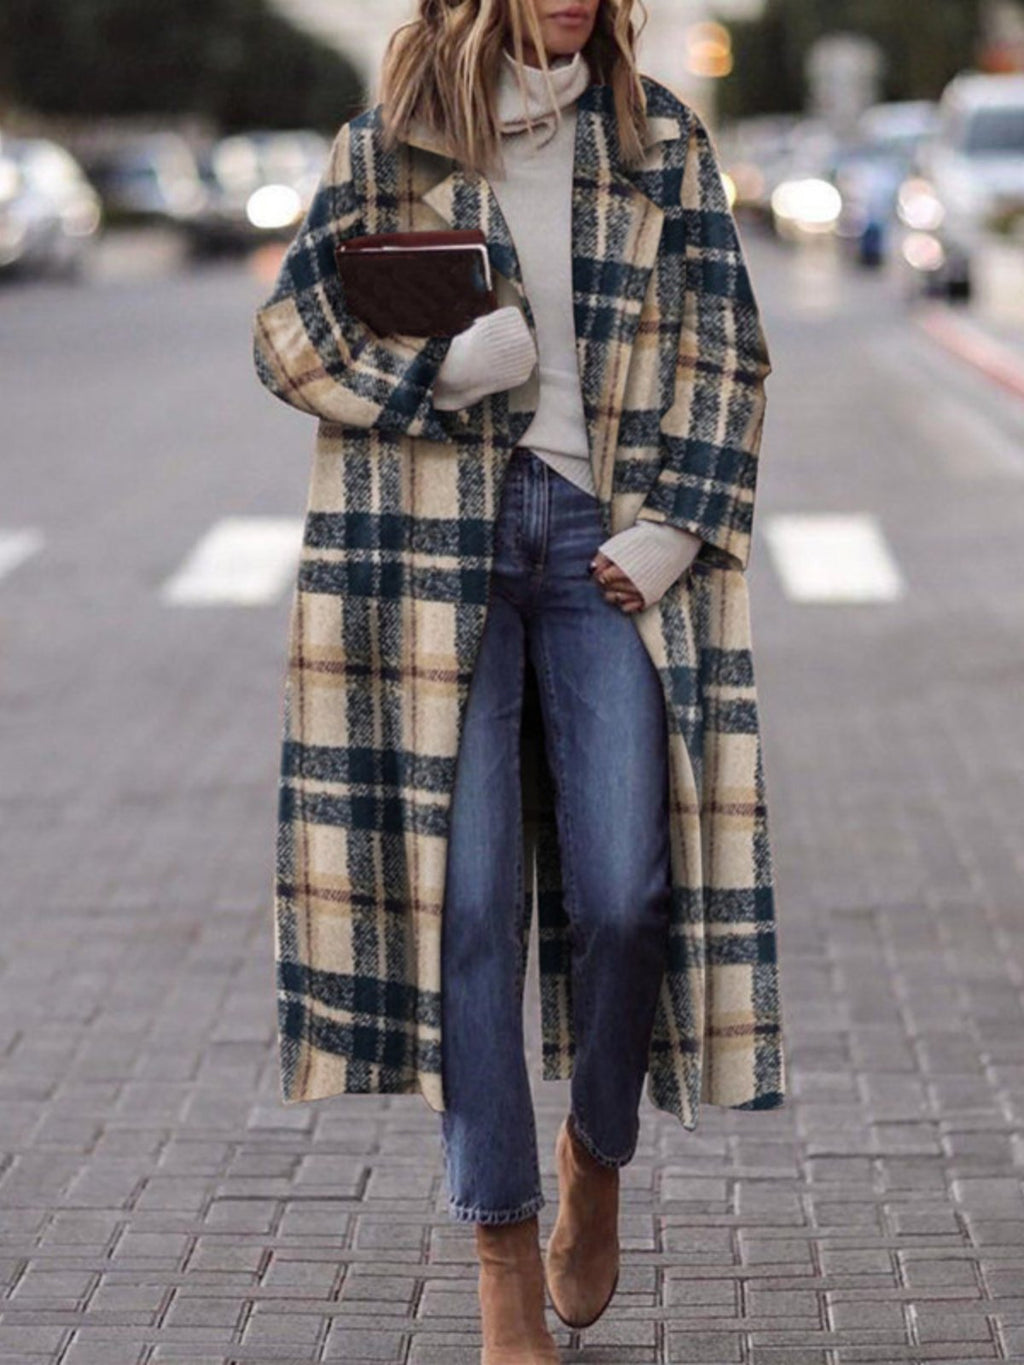 Black Long Sleeve Pockets Checkered/plaid plus size Outerwear